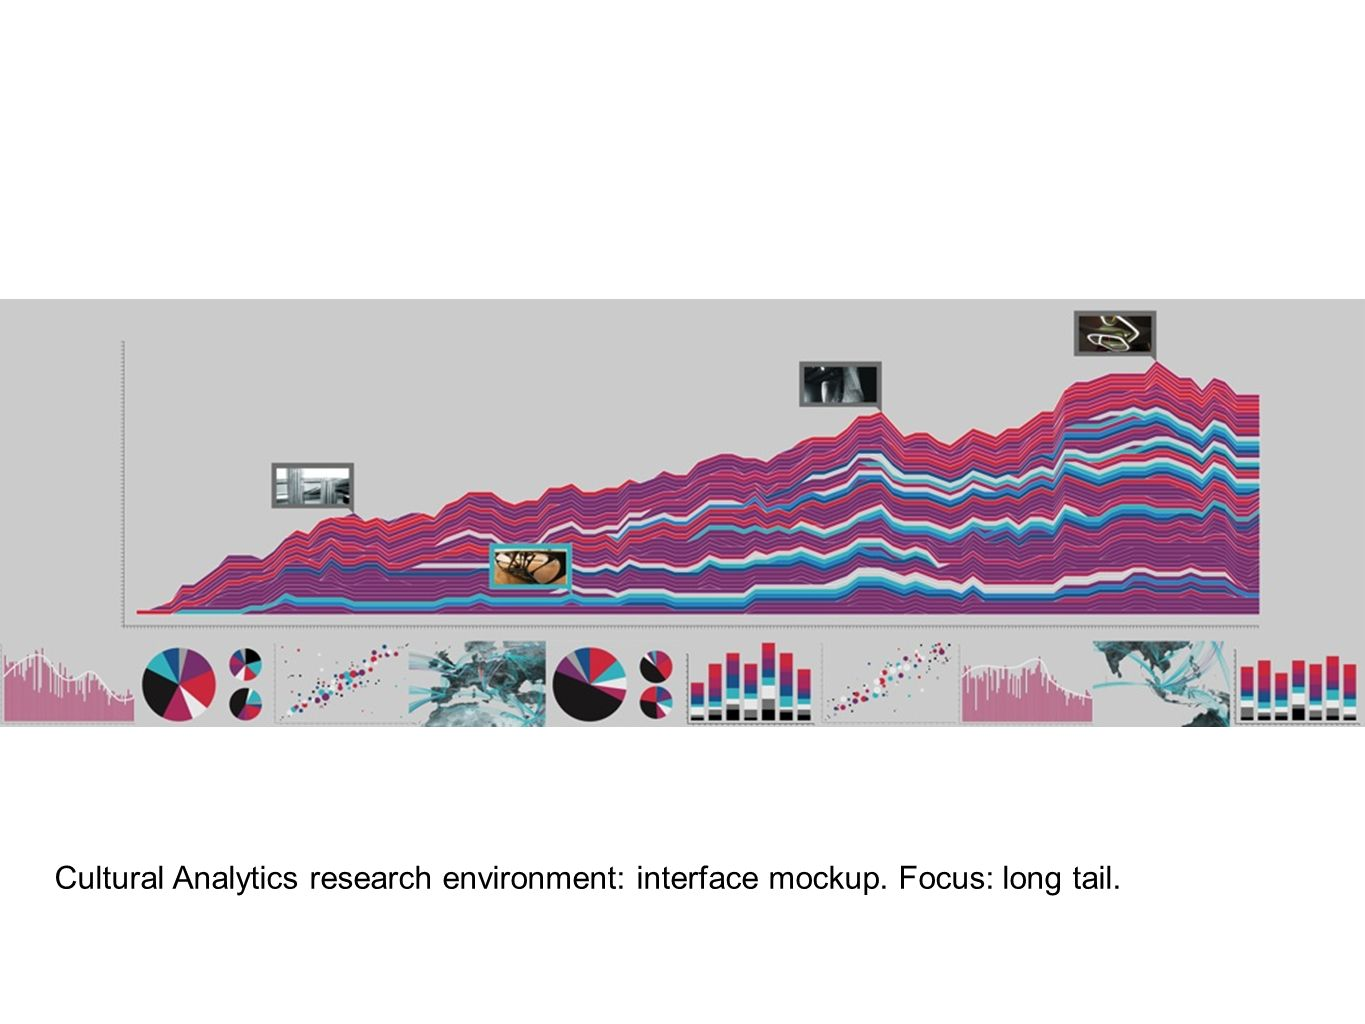 Cultural Analytics research environment: interface mockup. Focus: long tail.